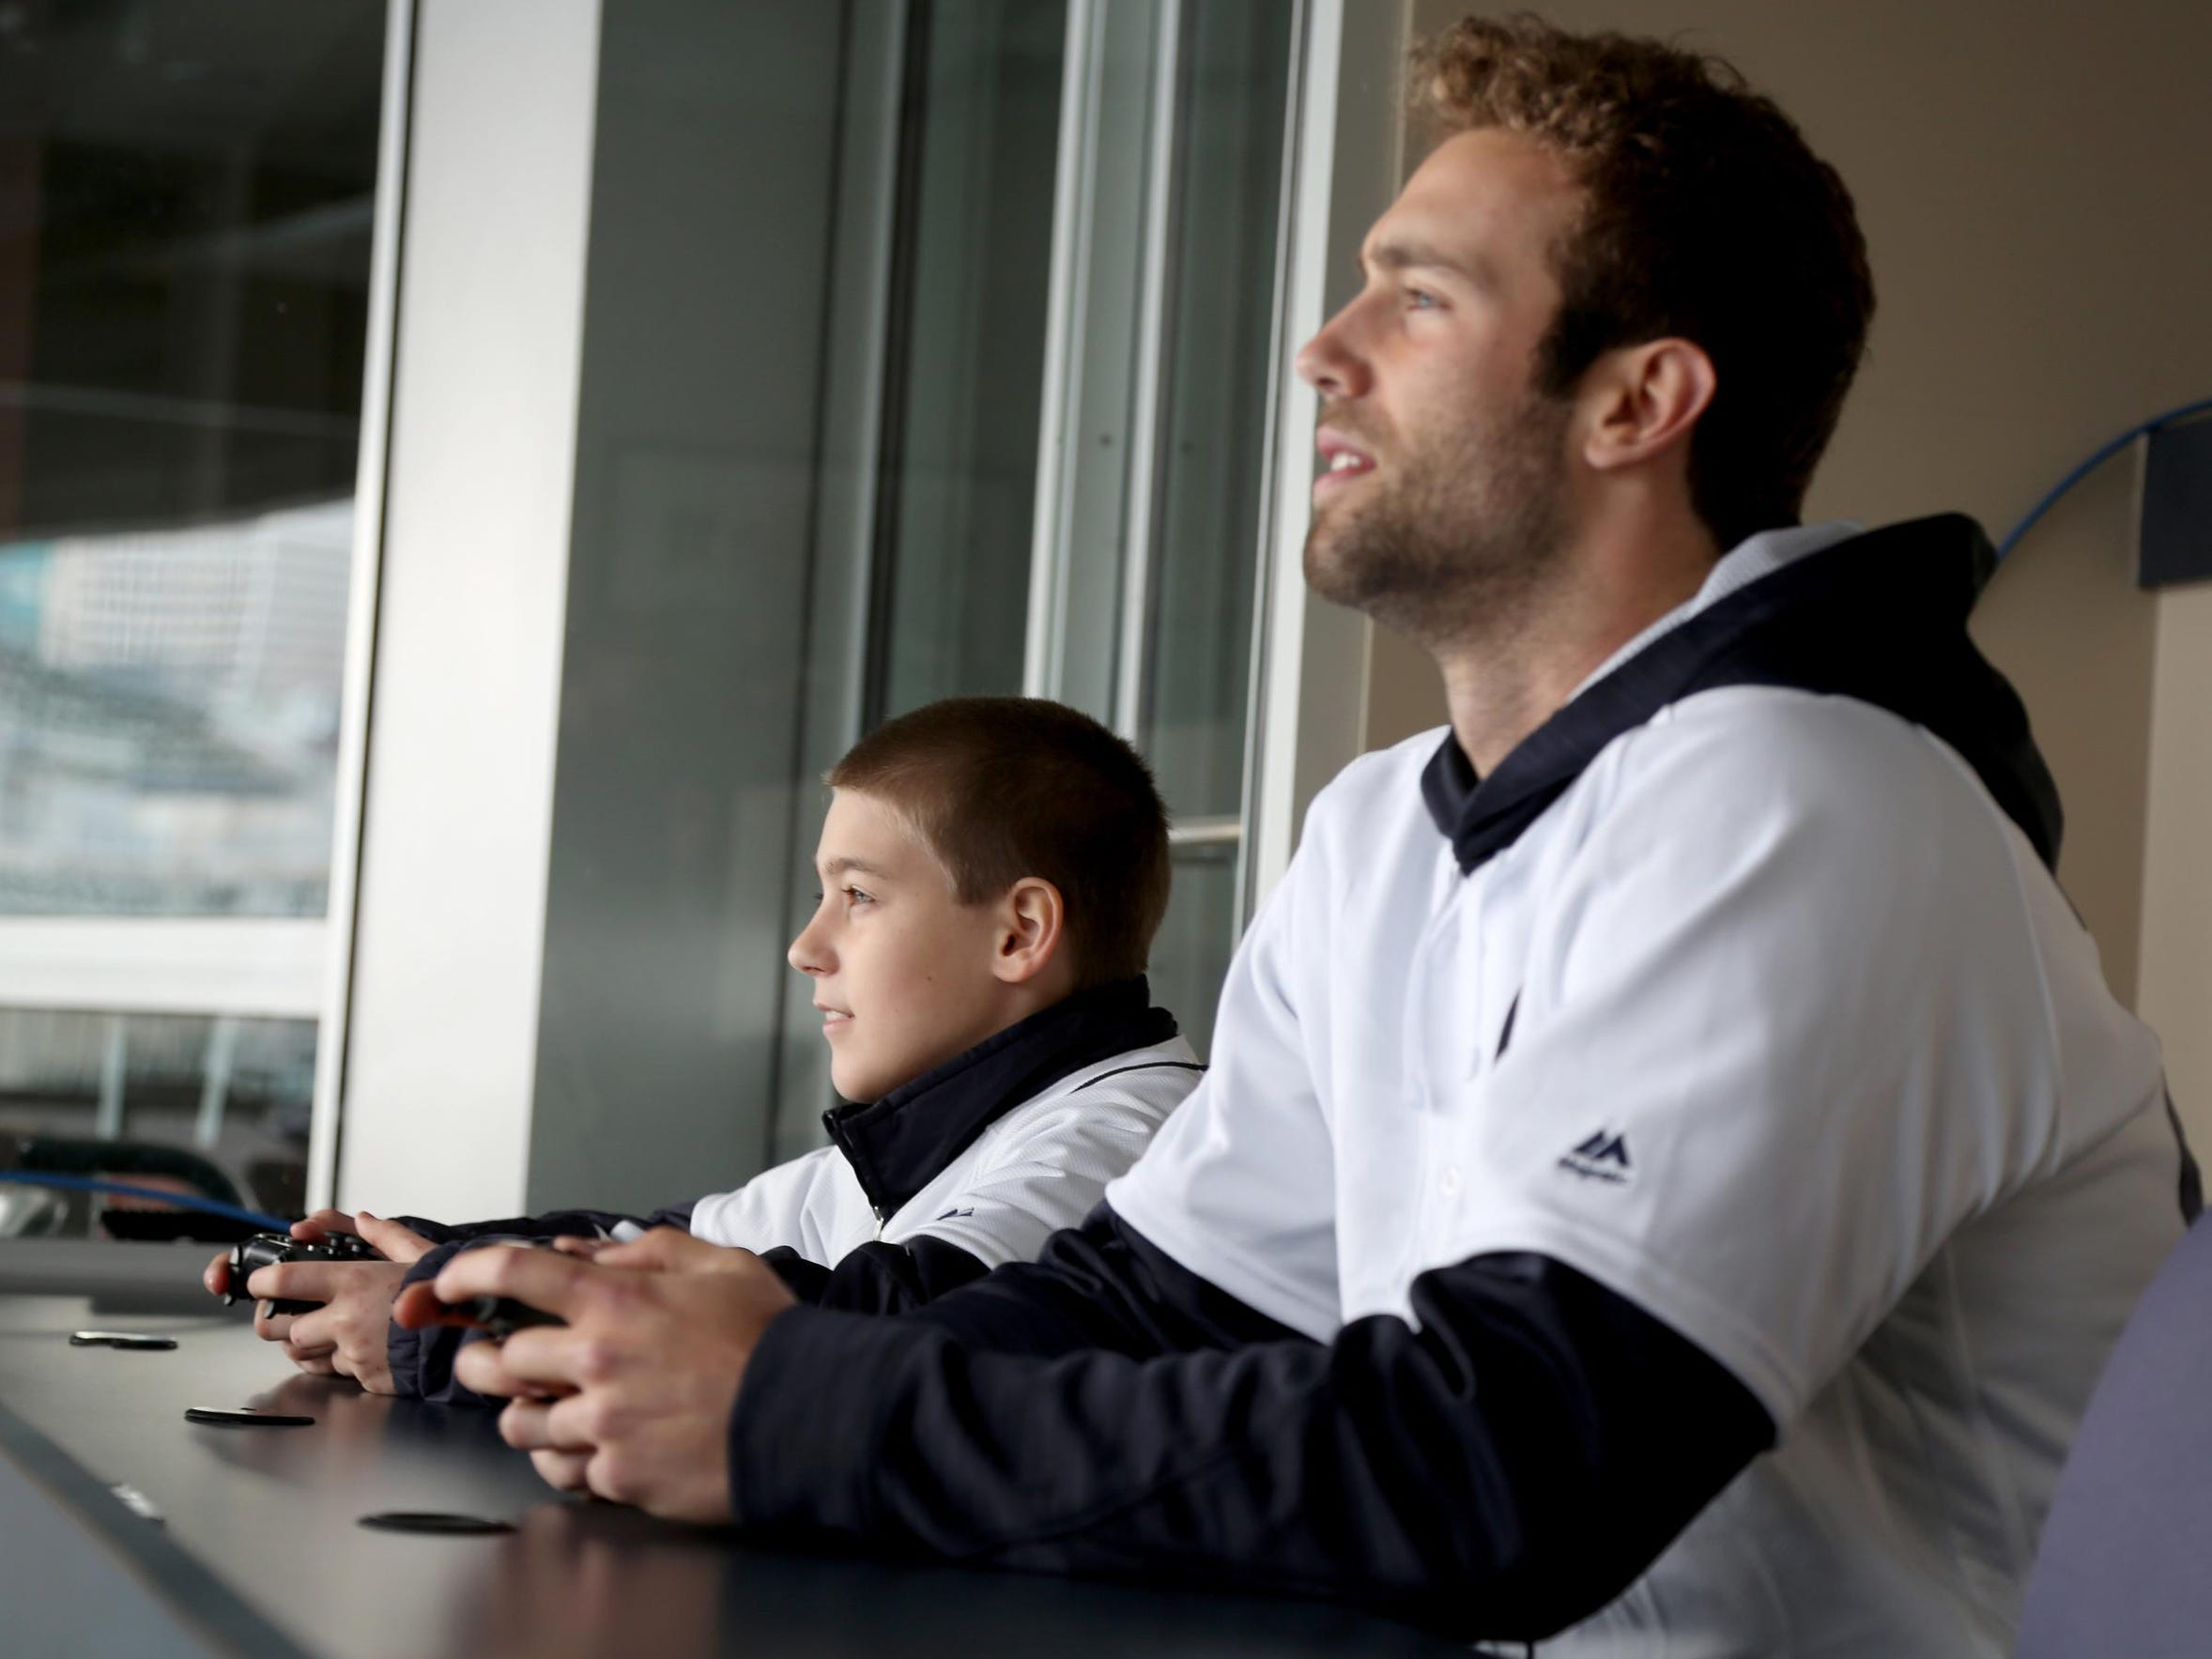 Hunter Bowman plays MLB 2015 on a Playstation 4 against